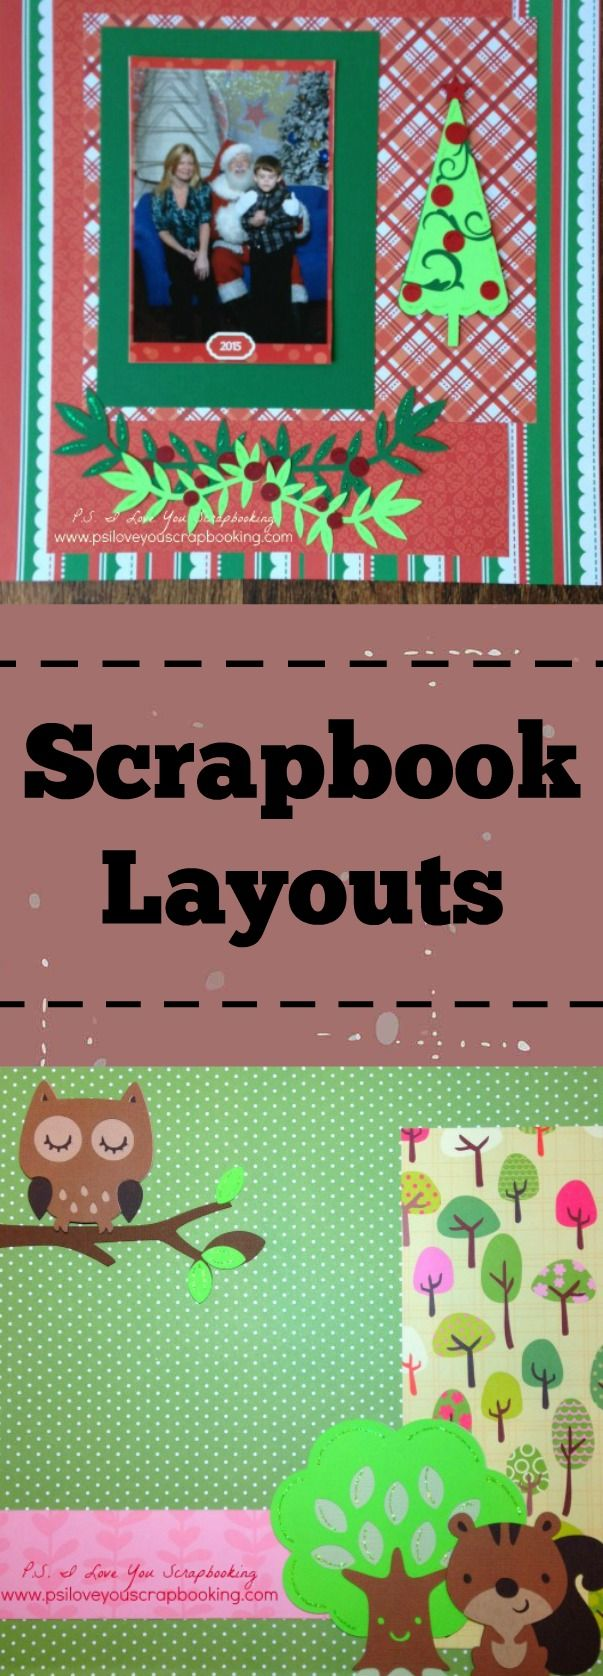 Scrapbook Layouts and Page Layout Ideas are always in demand with scrapbookers.  We have tons of  photos, but don't have have enough ideas how to get them into scrapbook albums.  Learn how to get lots of photos on one page and different ways to decorate your pages.